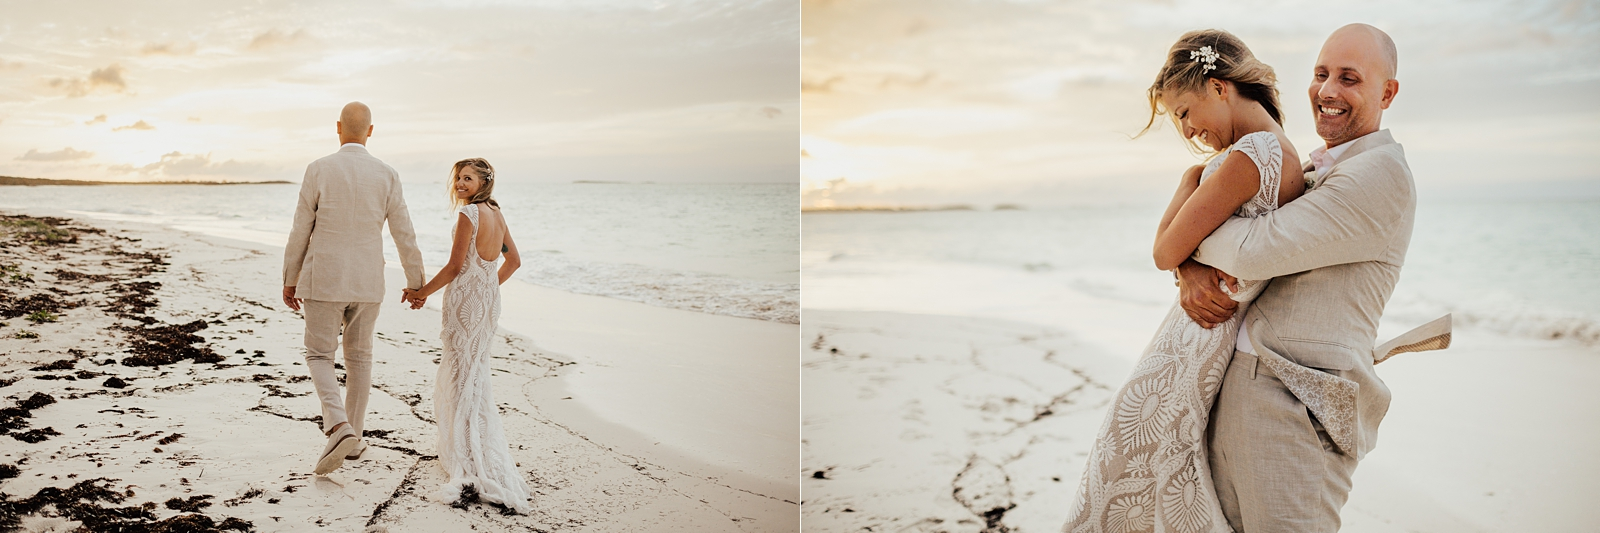 Jenni & Andrew Intimate Beach Destination Wedding in Little Exuma, Bahamas_0526.jpg